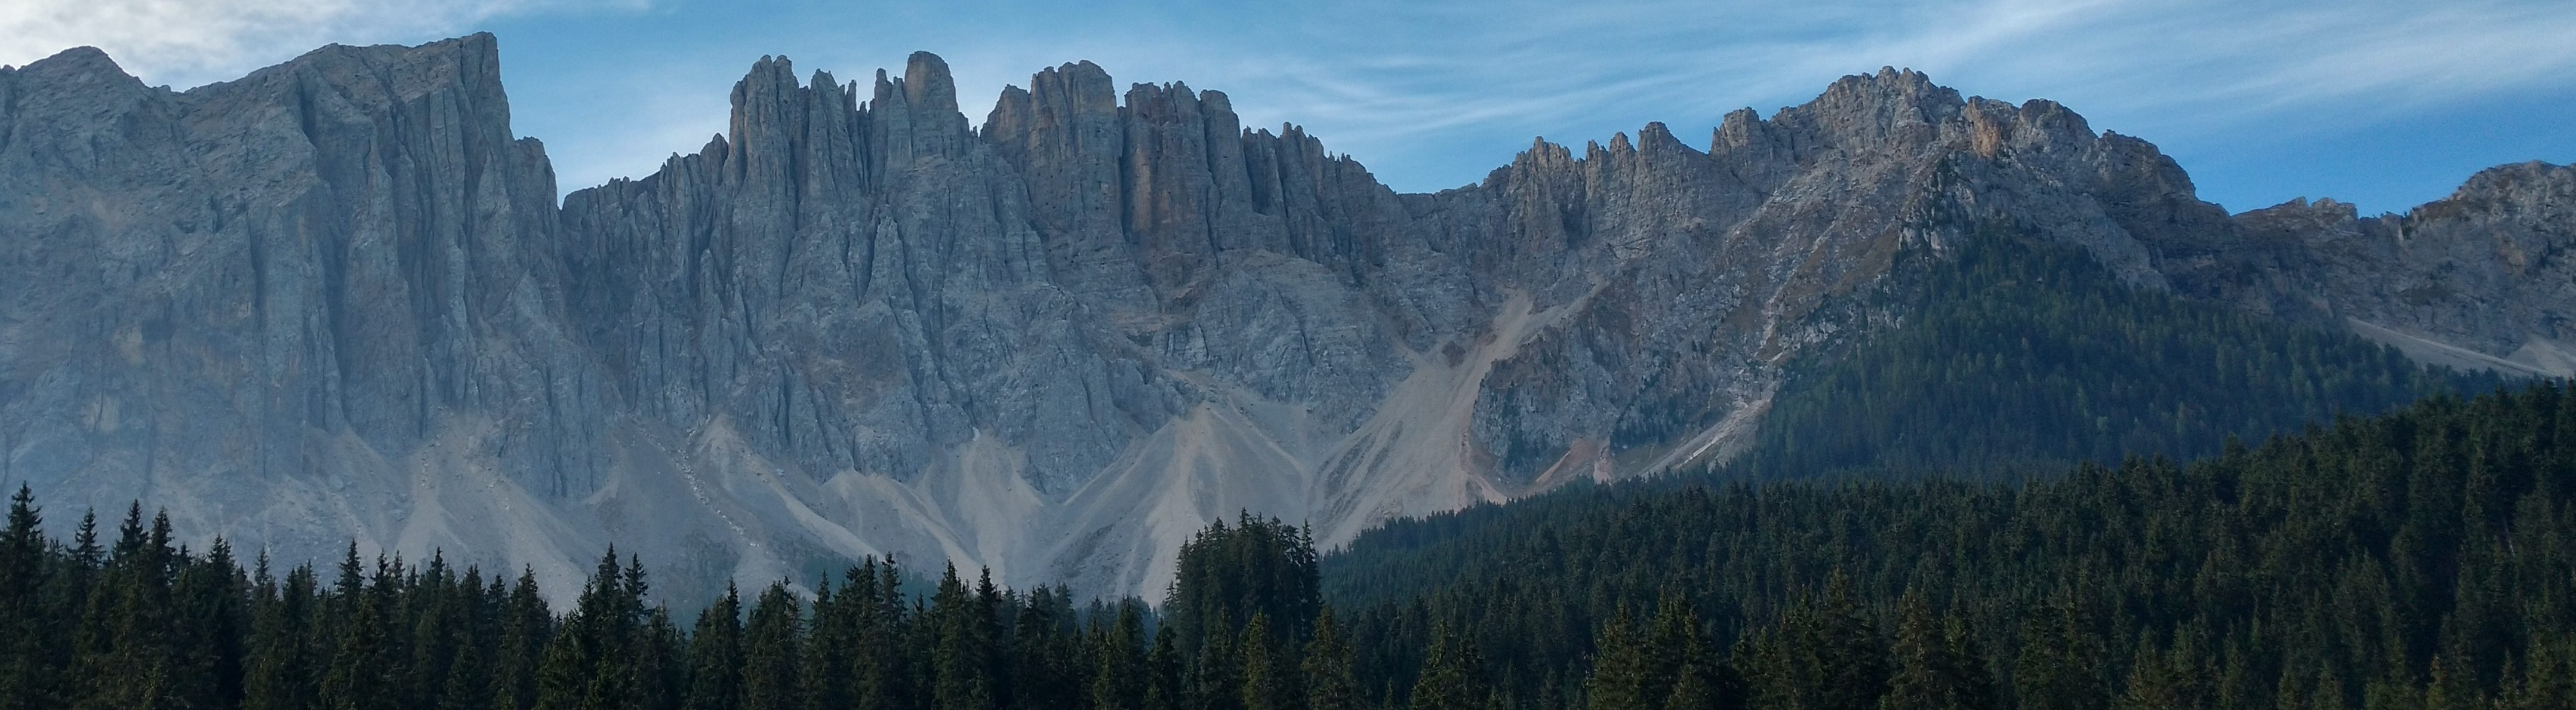 dolomite awesome mountains